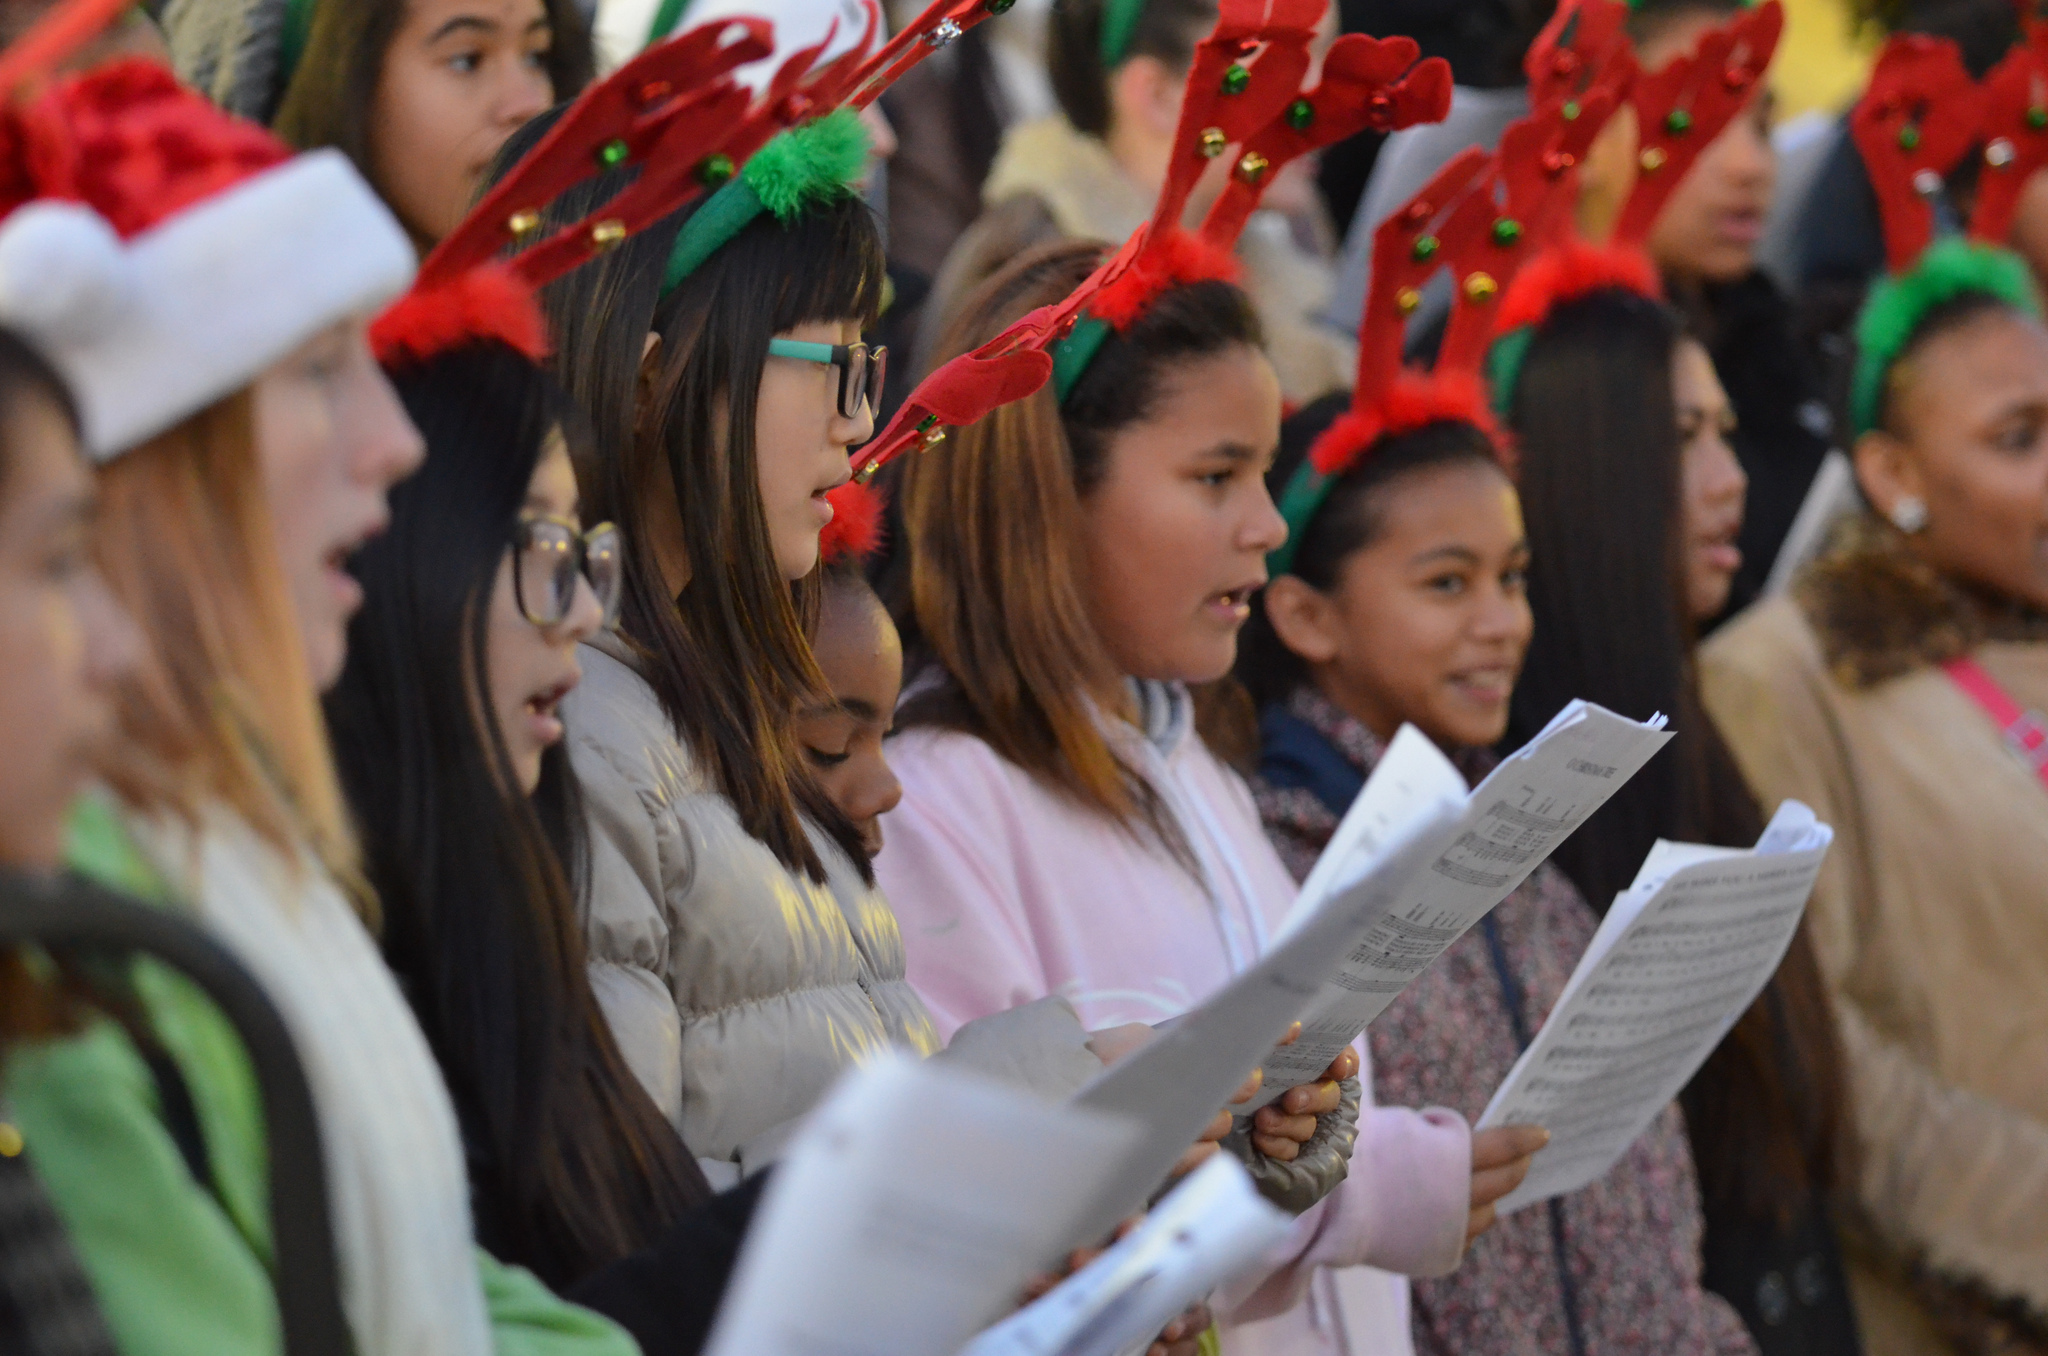 Christmas caroling in New York City for families